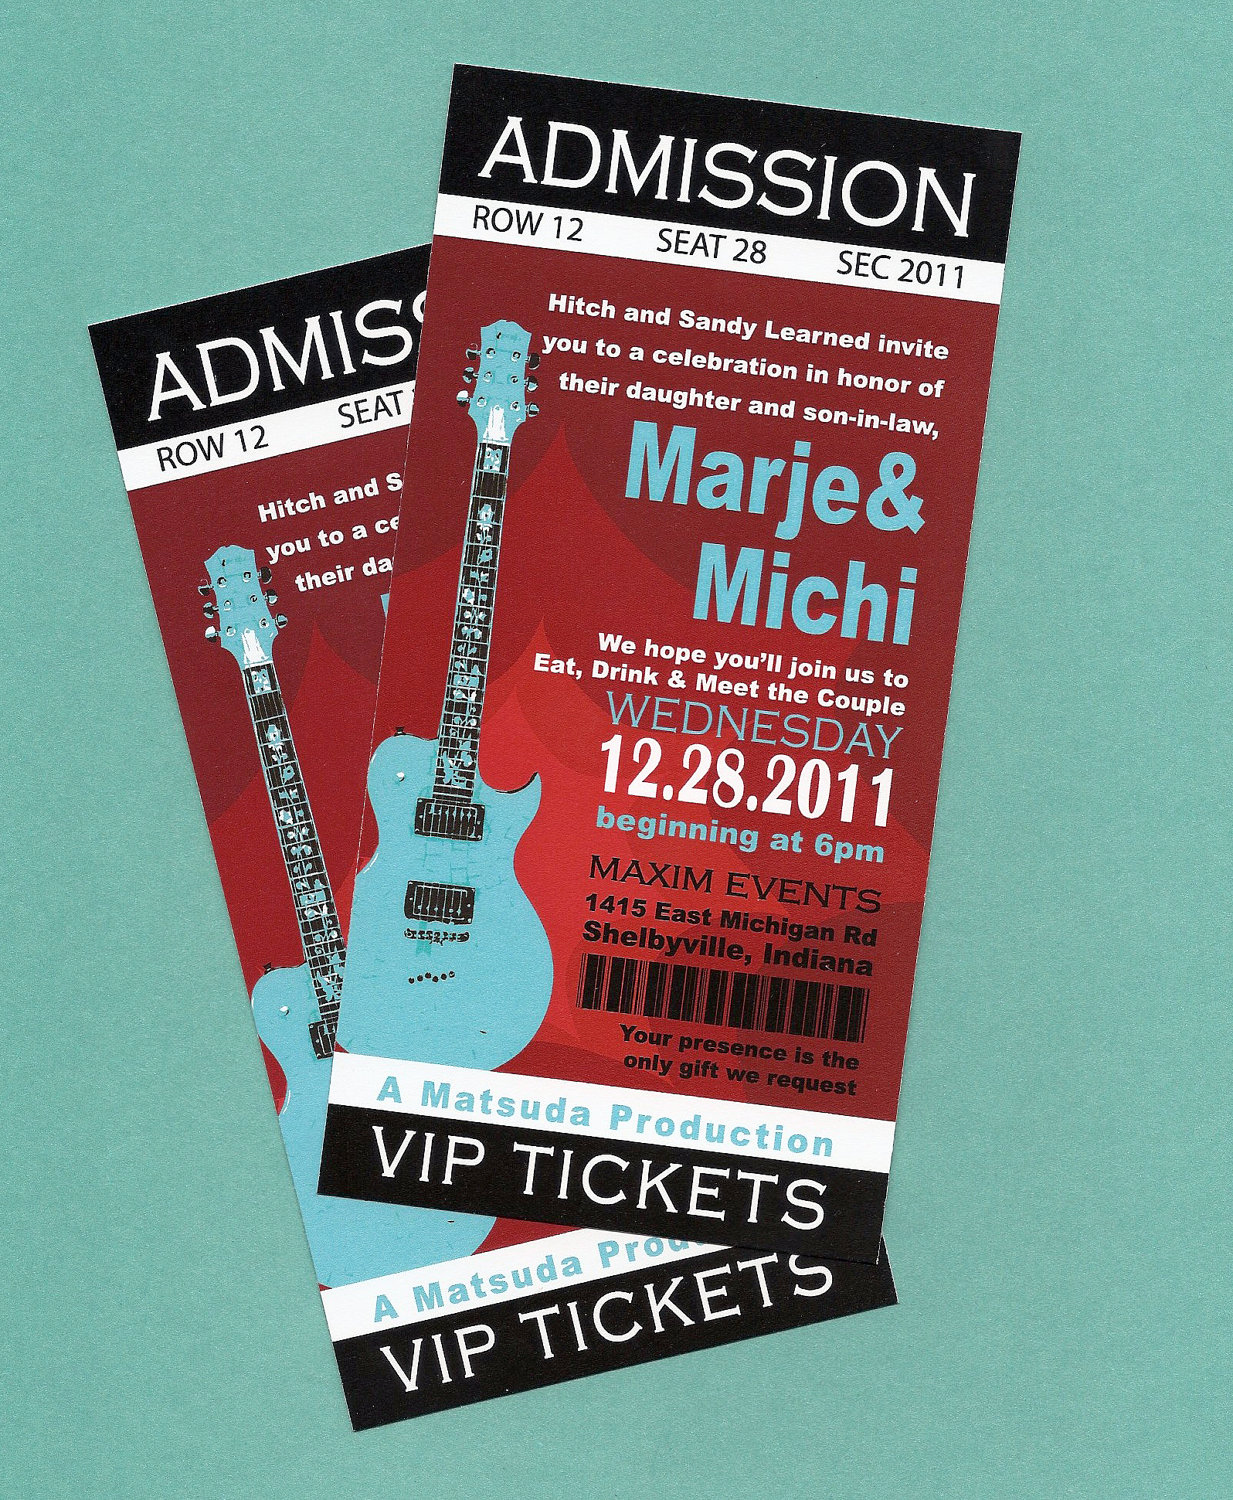 Concert Ticket Invitation Template Free Fresh 28 Concert Ticket Templates Psd Ai Word